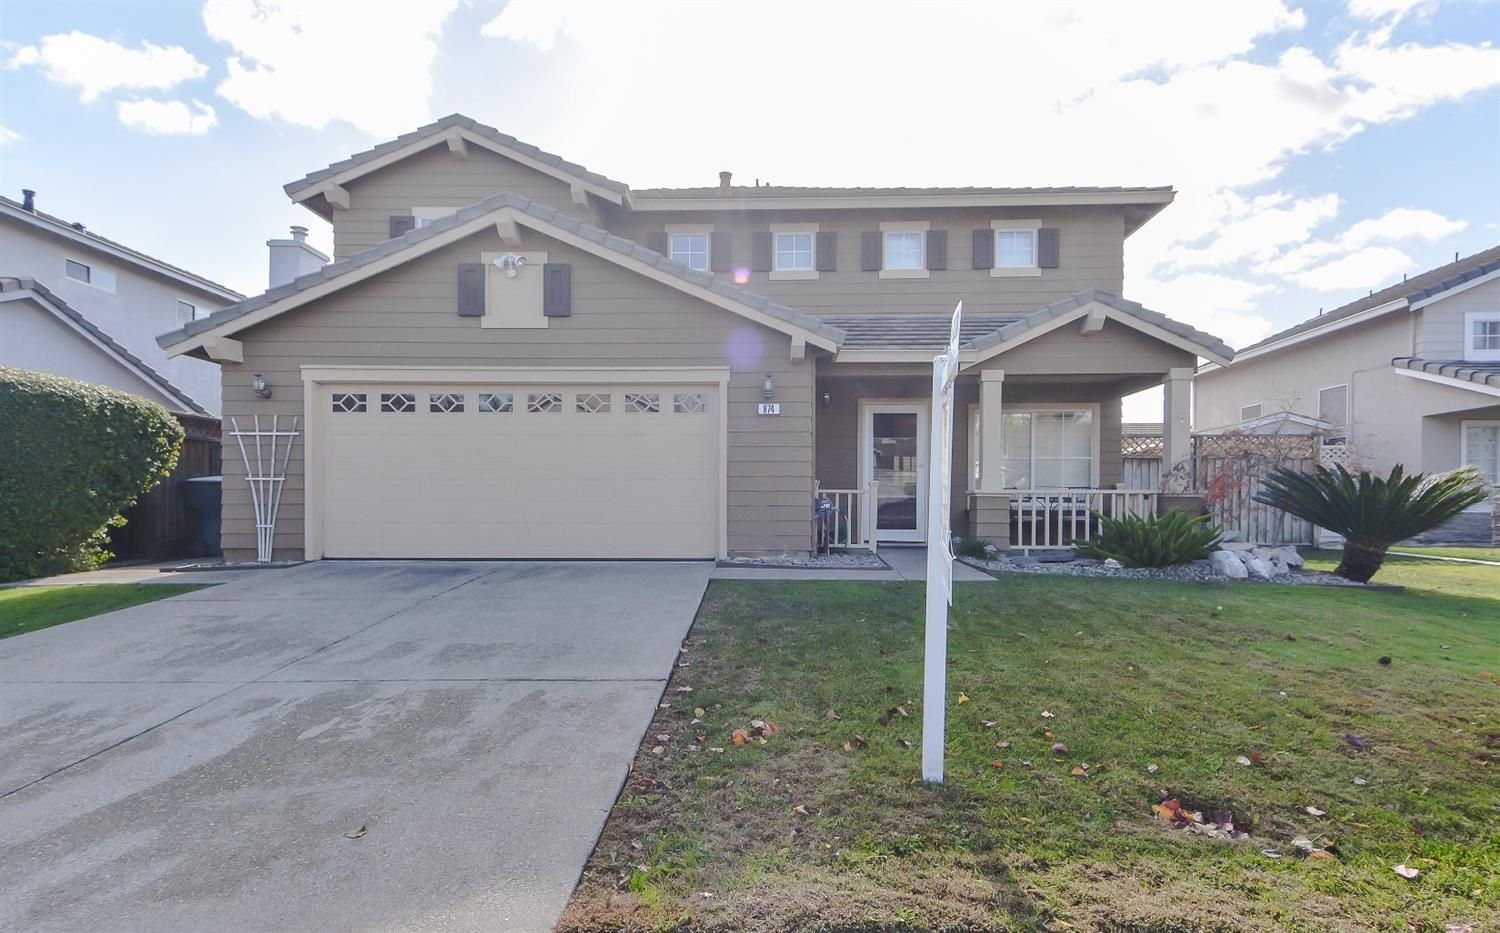 874 Tom Fowler Dr, Tracy, CA